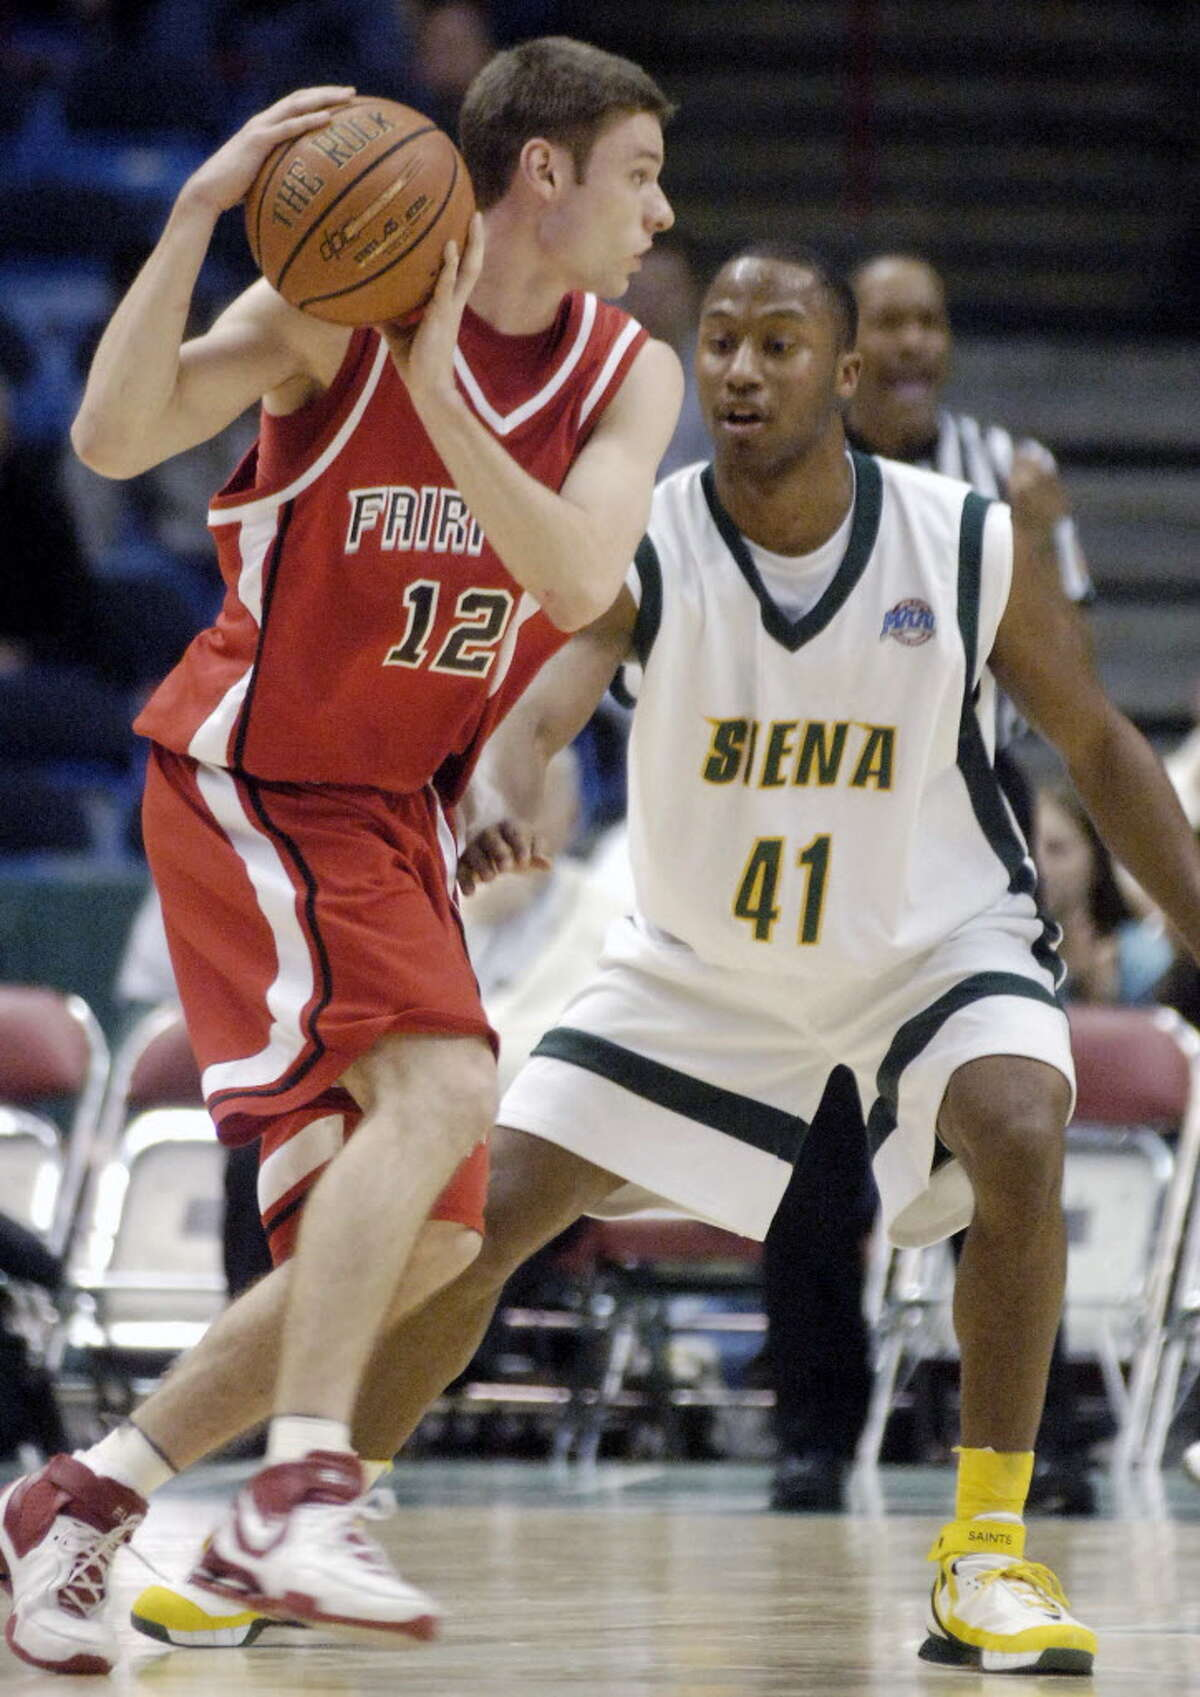 Times Union Photo by James Goolsby-Jan. 19, 2007-Fairfield #12-Michael Van Schaick, from Glens Falls N.Y. Controls the ball vs Siena #41-Kenny Hasbrouck. In the first half of game at the Times Union Center.